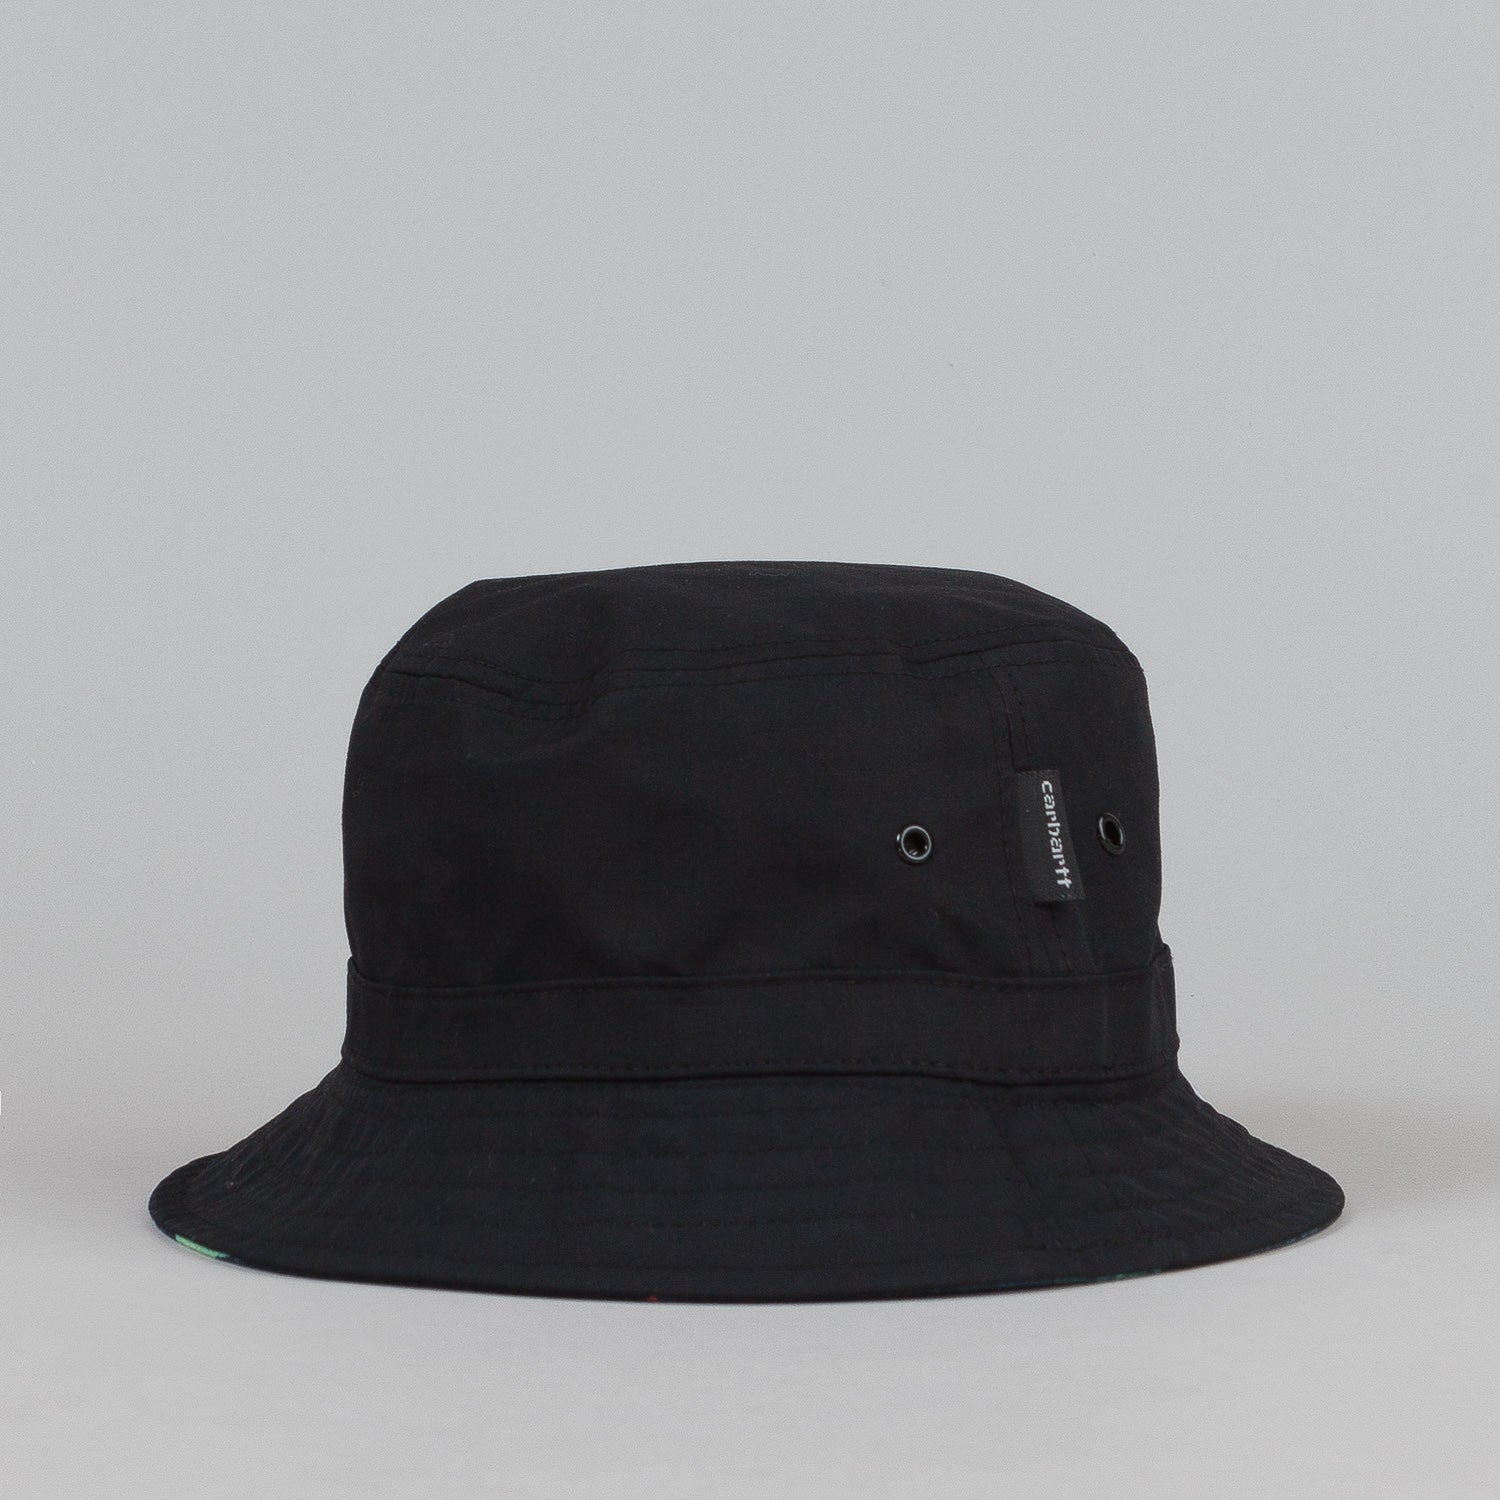 Carhartt Reversible Bucket Hat - Tropic Print / Black